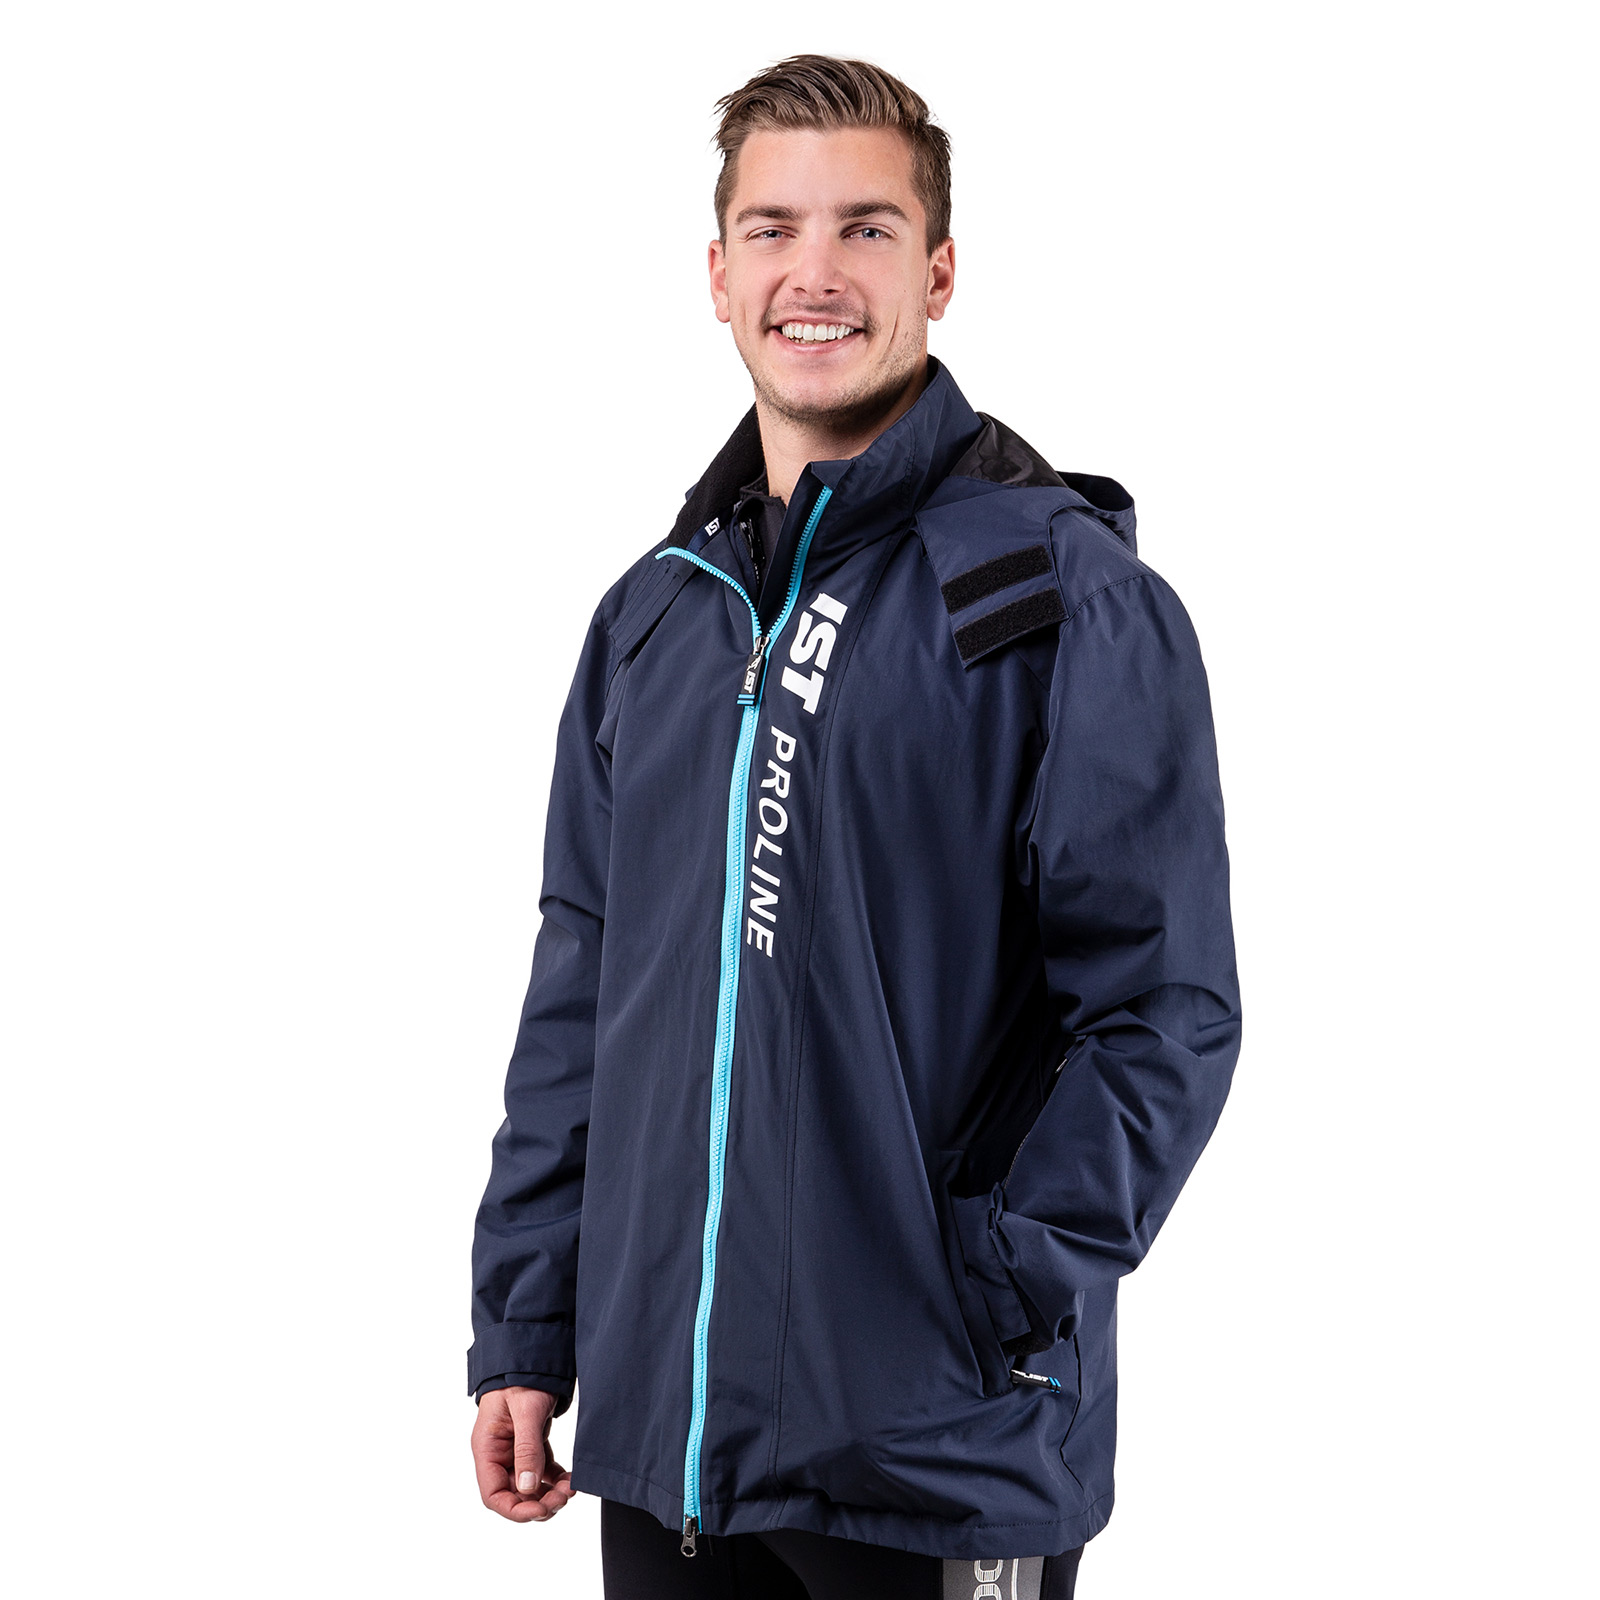 2-in-1 Windbreaker